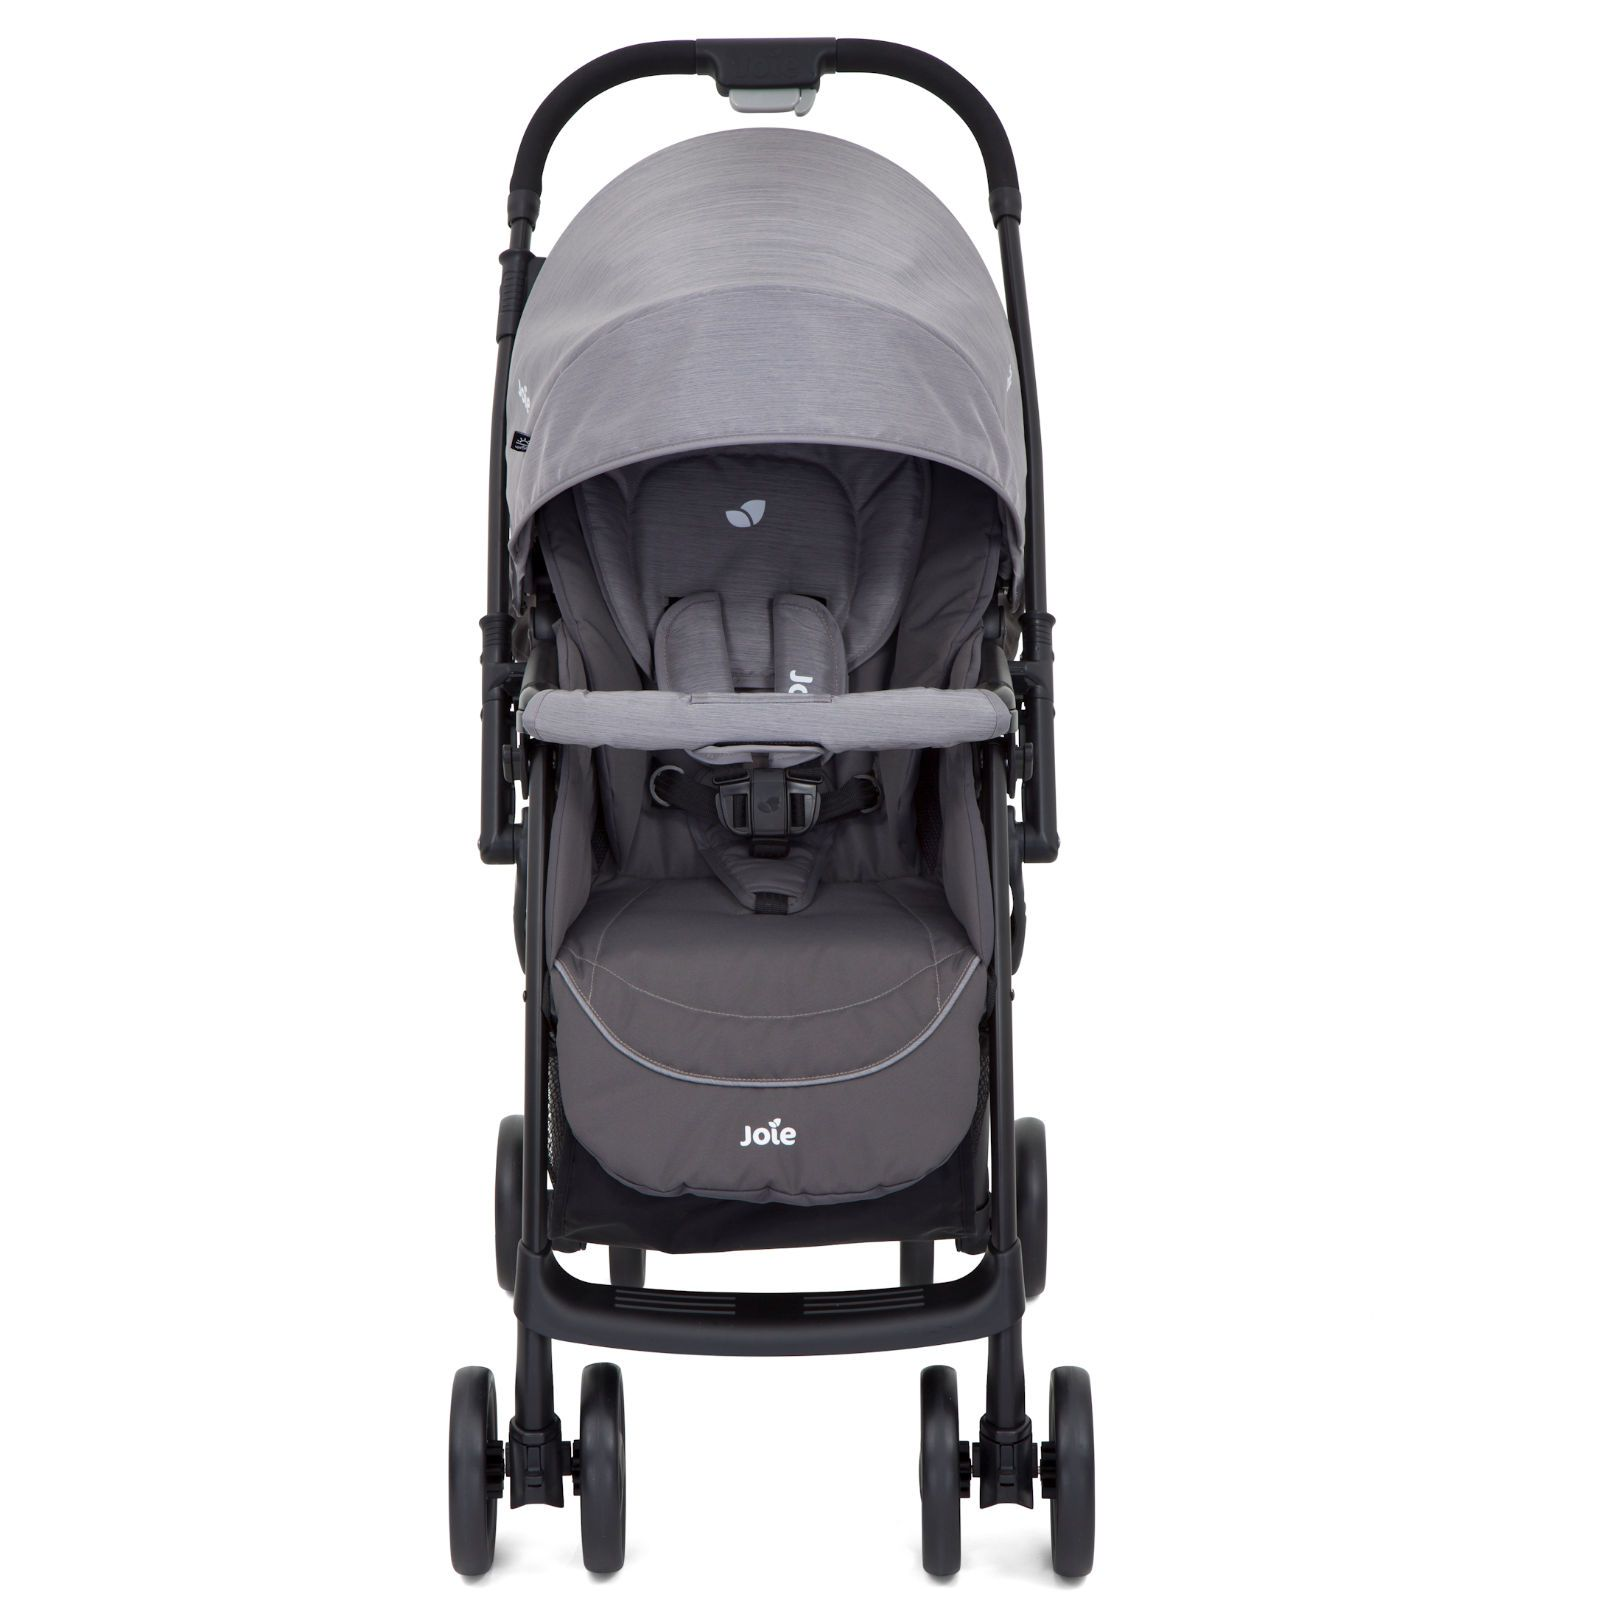 Joie Every Stage Verso Group 0+,1,2,3 ISOFIX Child Car